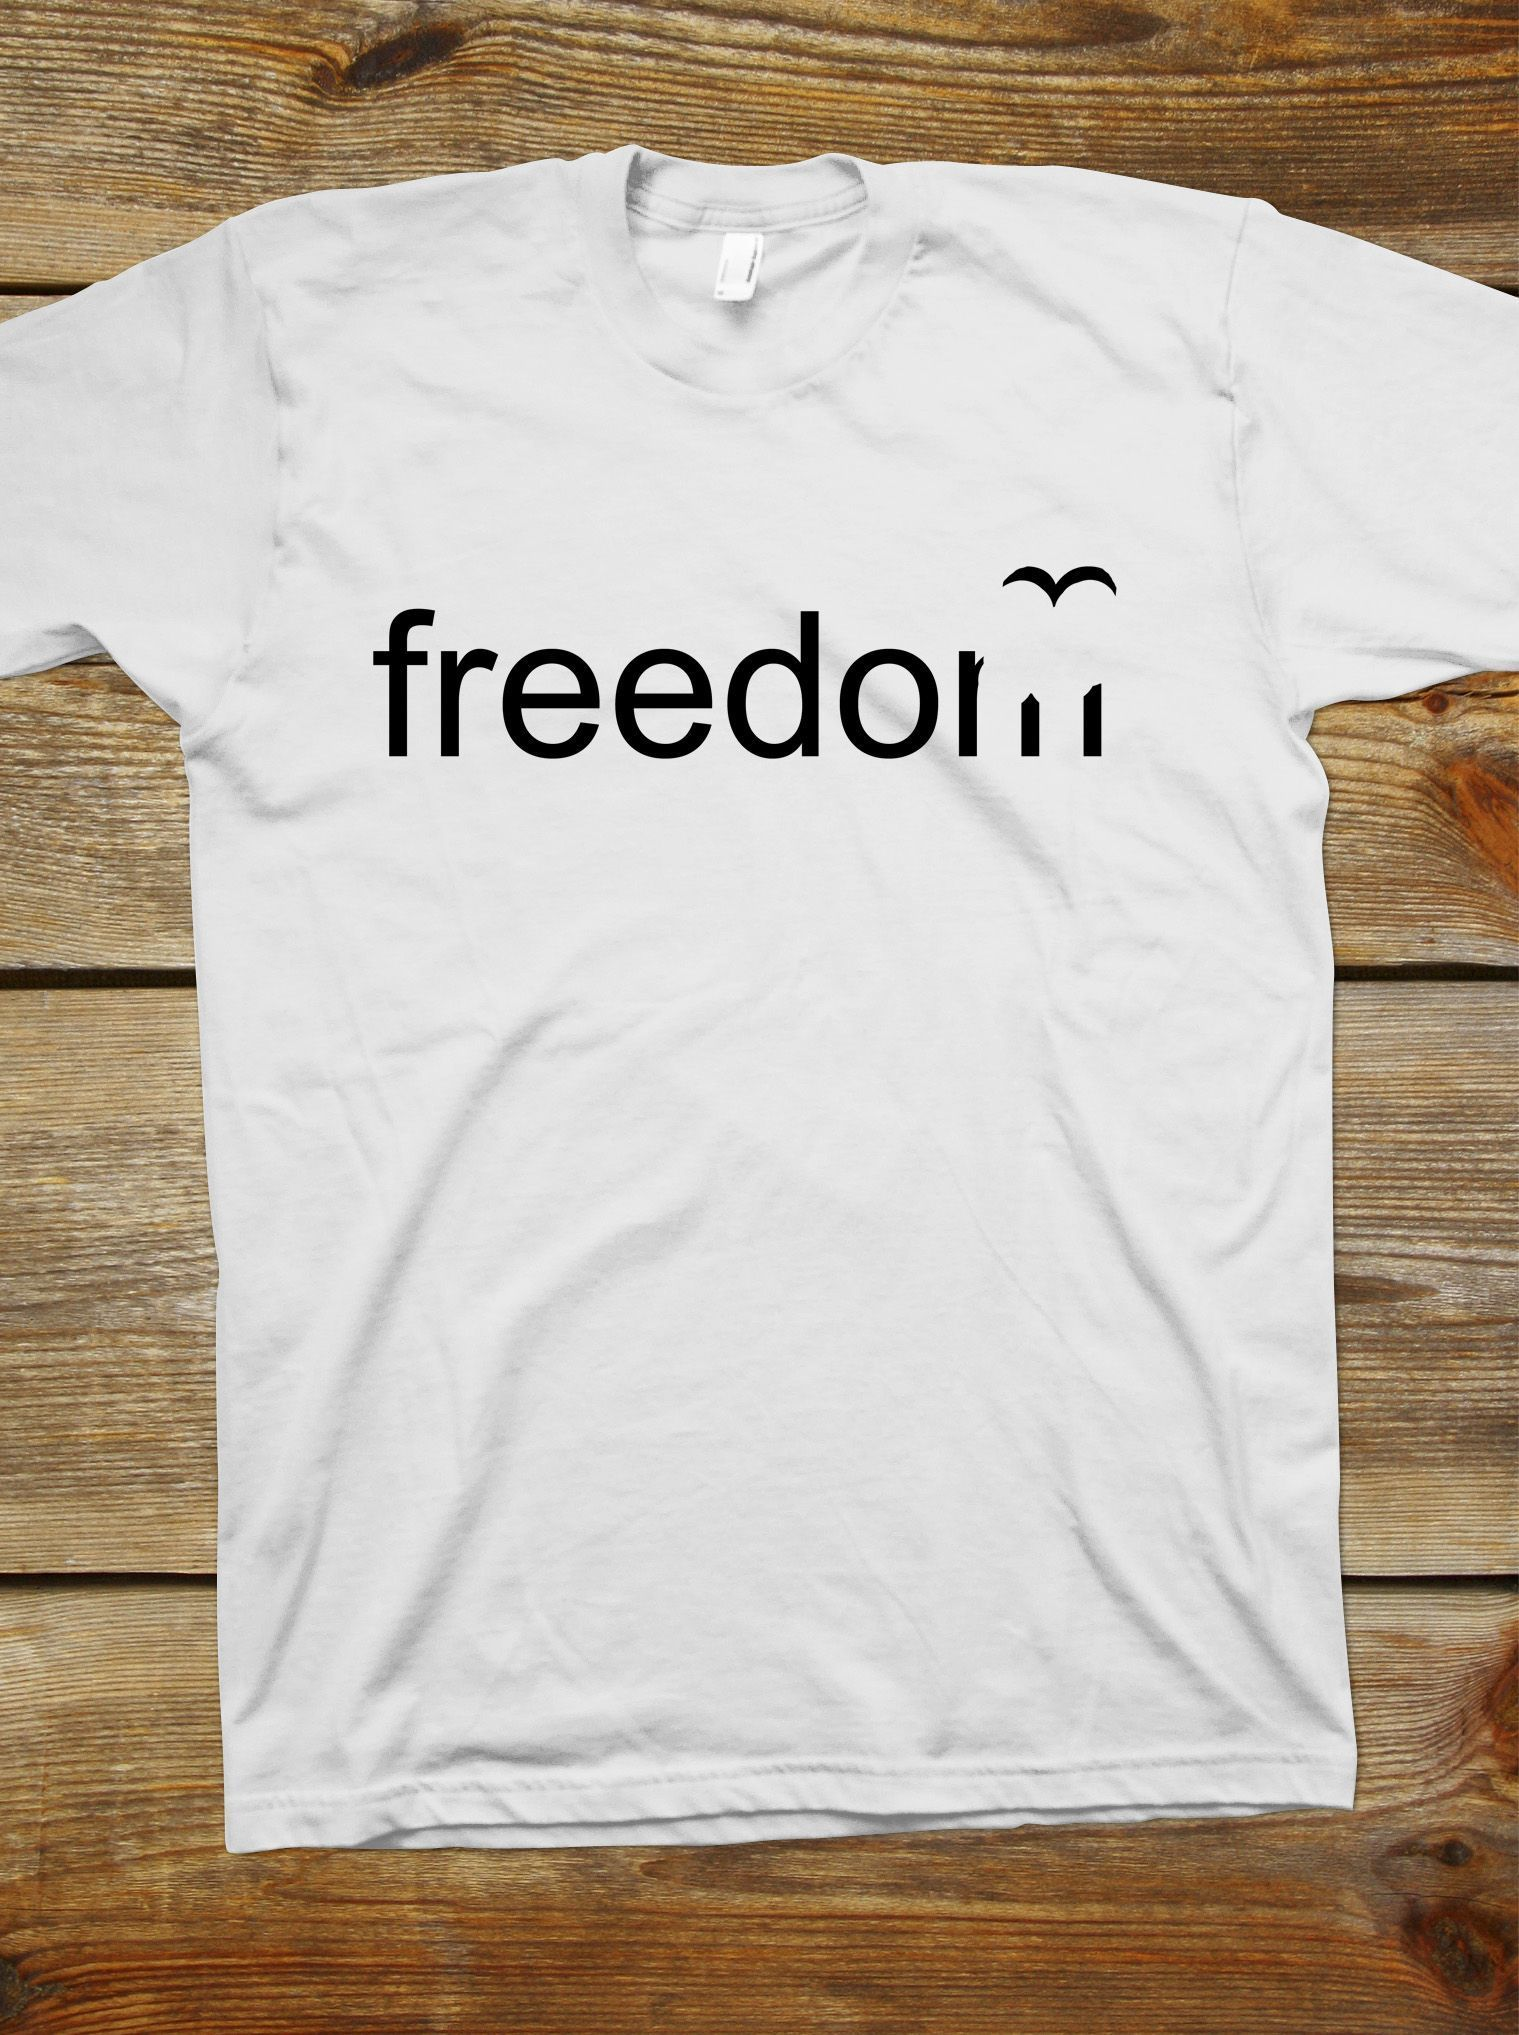 875605dff3a  freedom t-shirt  Romeotees